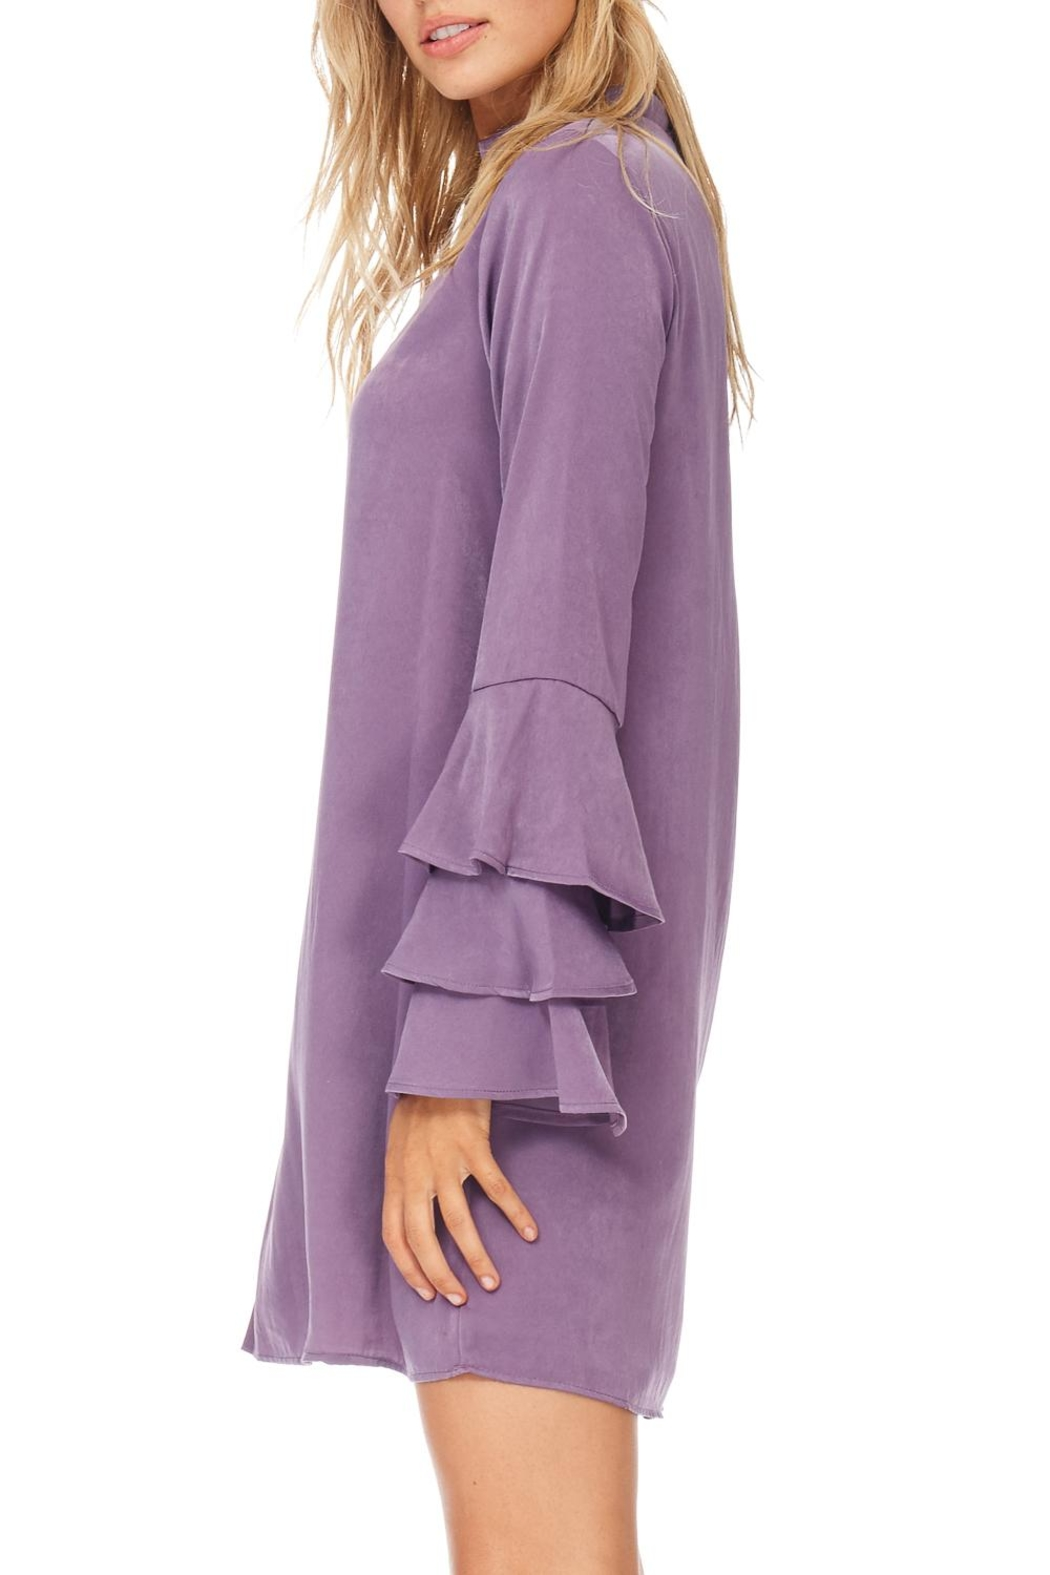 Everly Plum Silky Tiered Sleeve Dress - Side Cropped Image